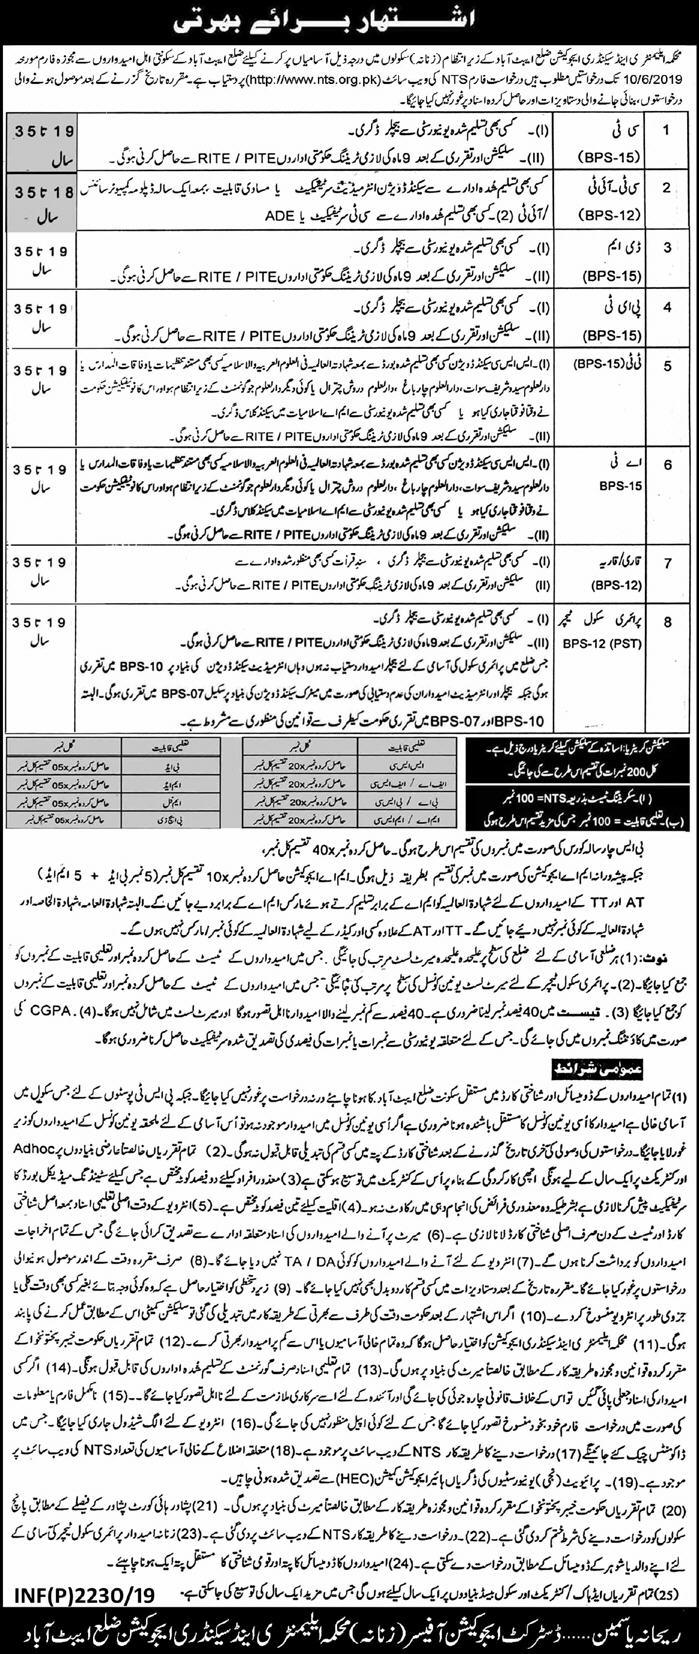 Elementary and Secondary Education Department NTS Jobs 2019 Apply online